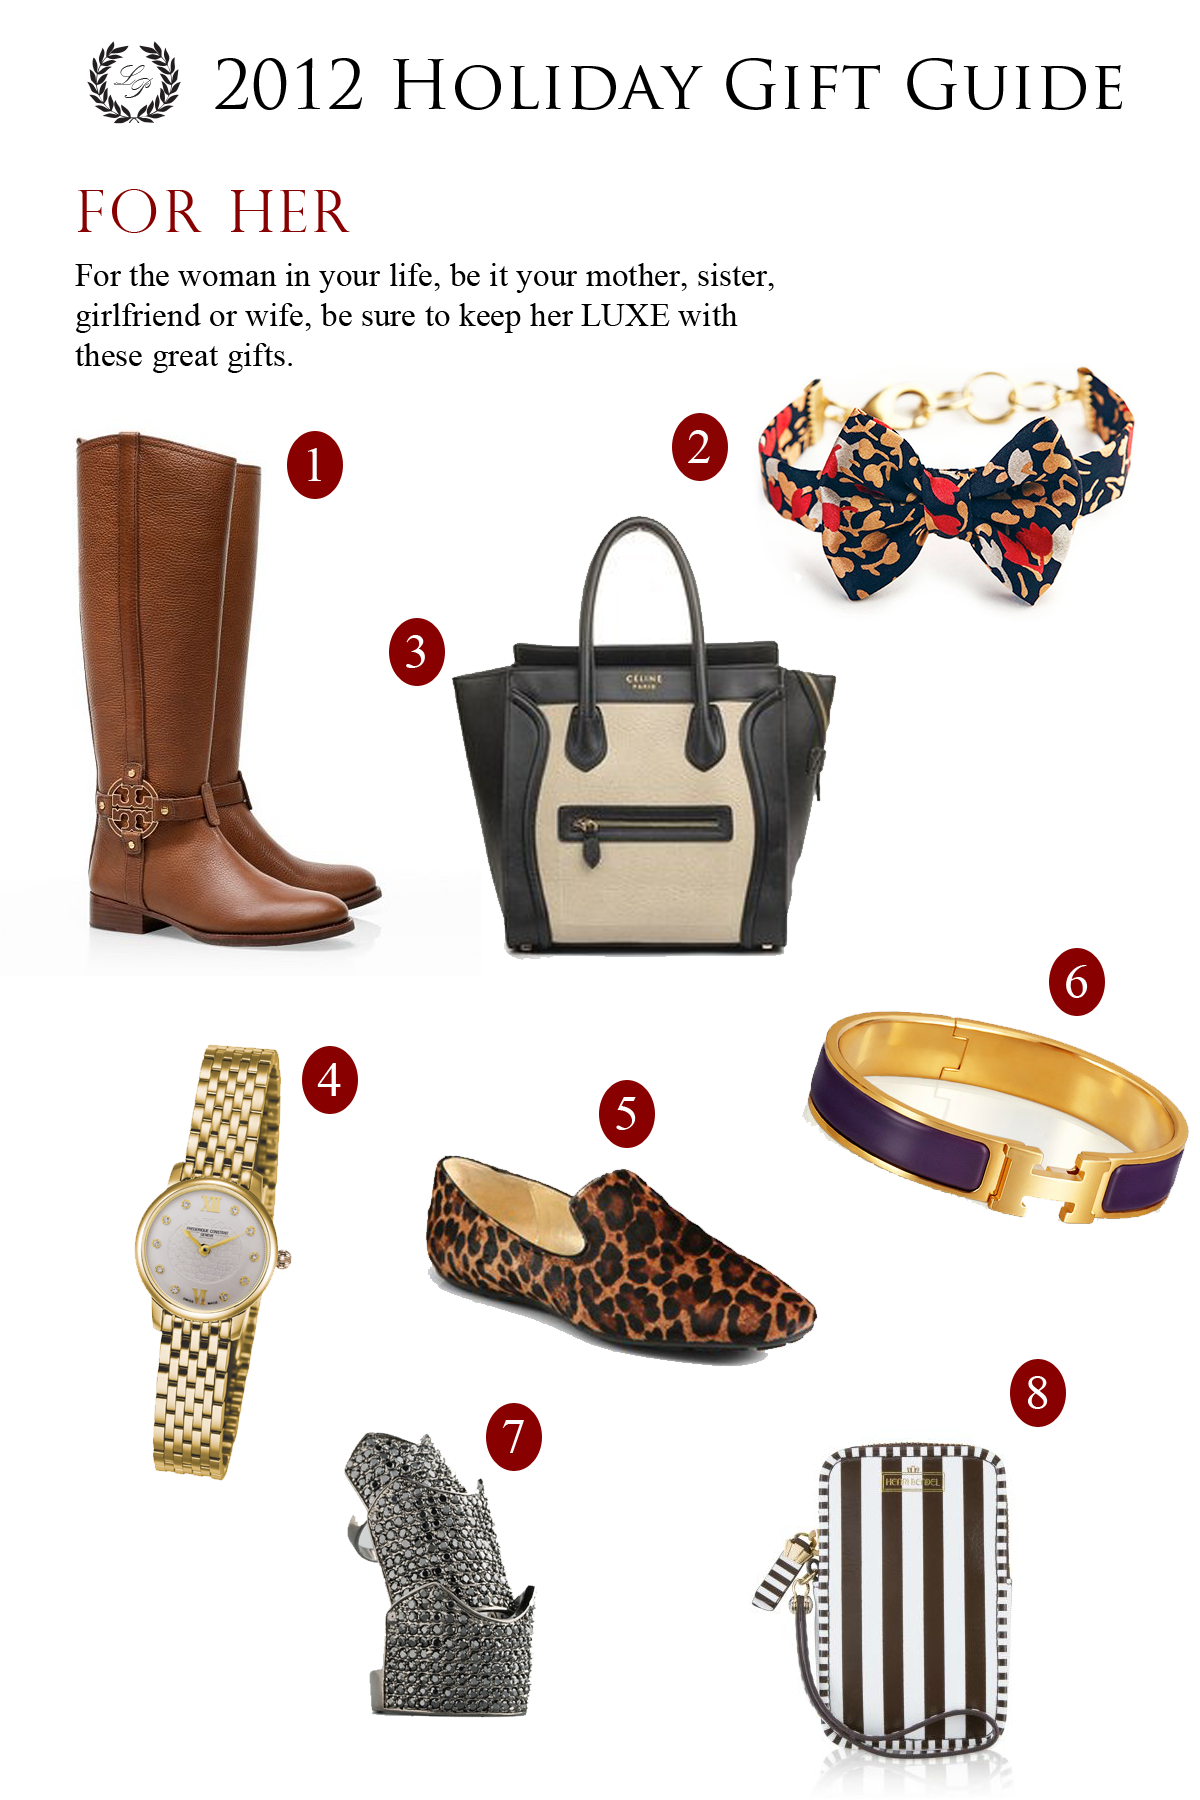 2012 Luxe Holiday Gift Guide